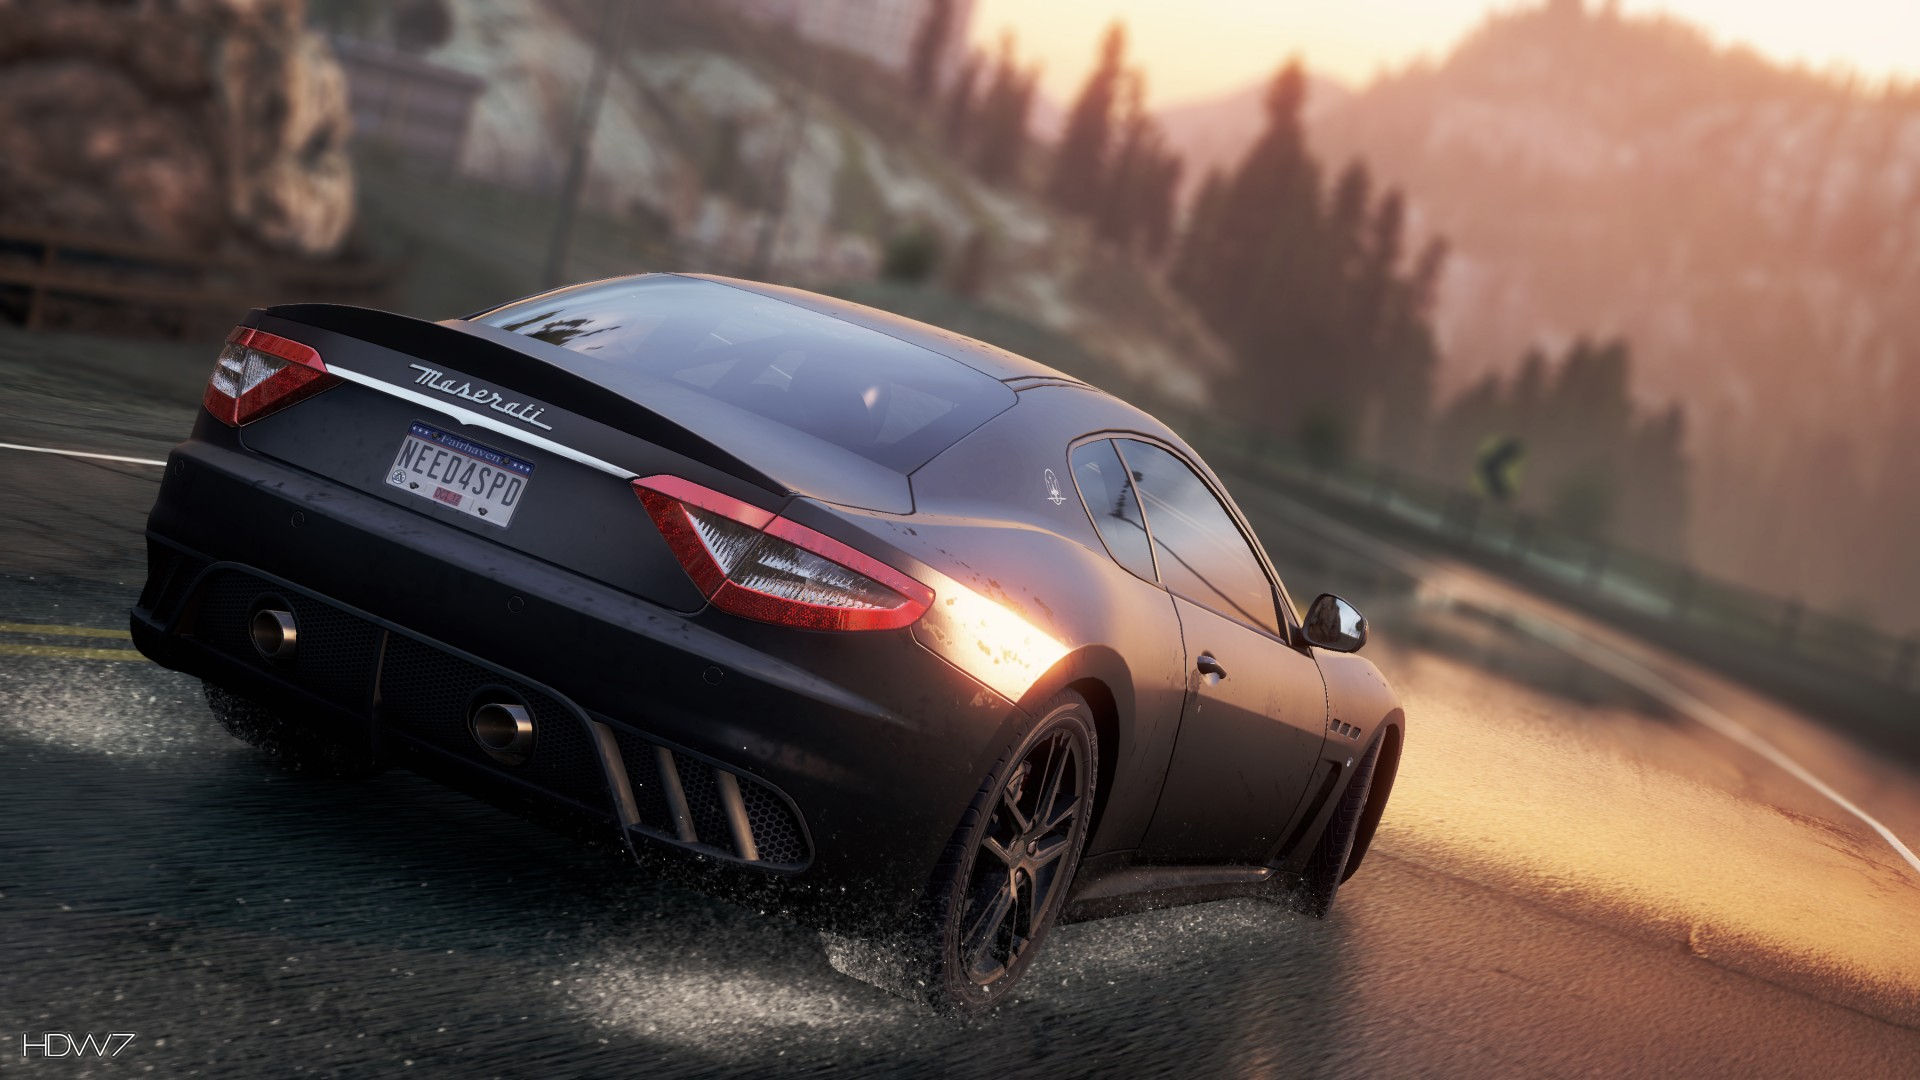 Need For Speed Most Wanted 2012 Maserati Granturismo Mc Stradale